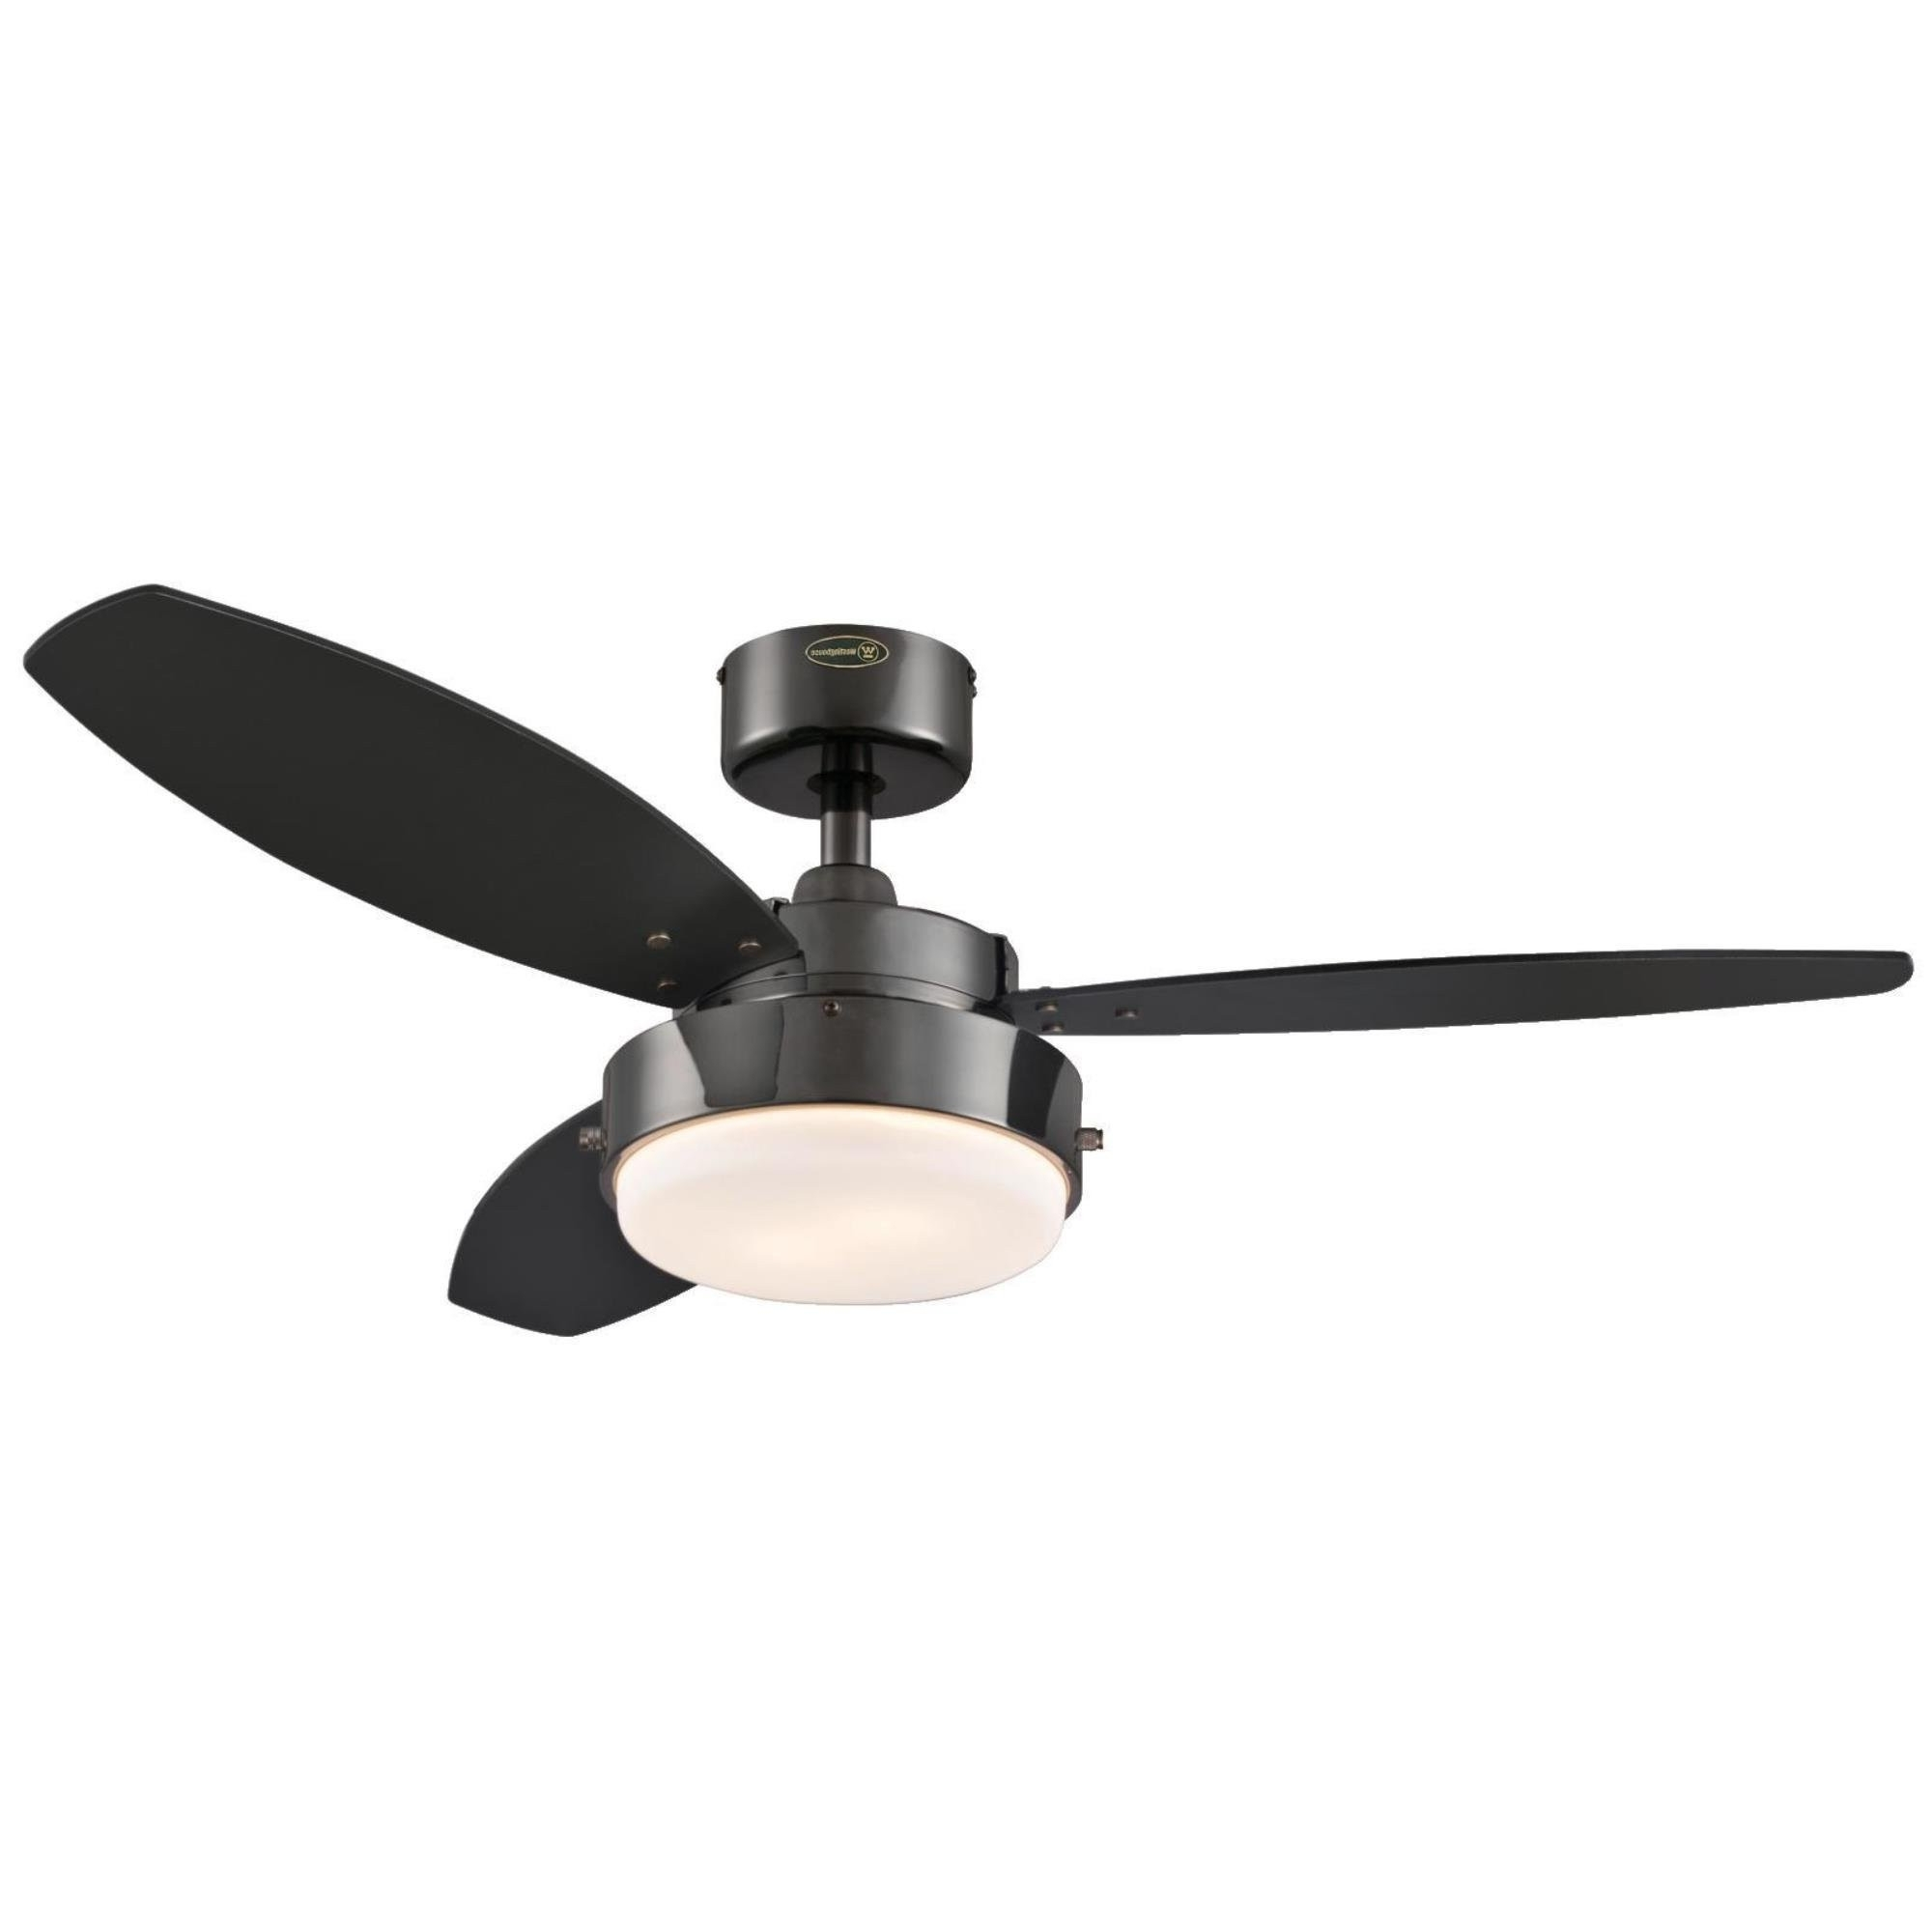 Preferred Indoor Outdoor Ceiling Fan With Light Best Of St Ceiling Fan With With Outdoor Ceiling Fans With Light And Remote (View 17 of 20)